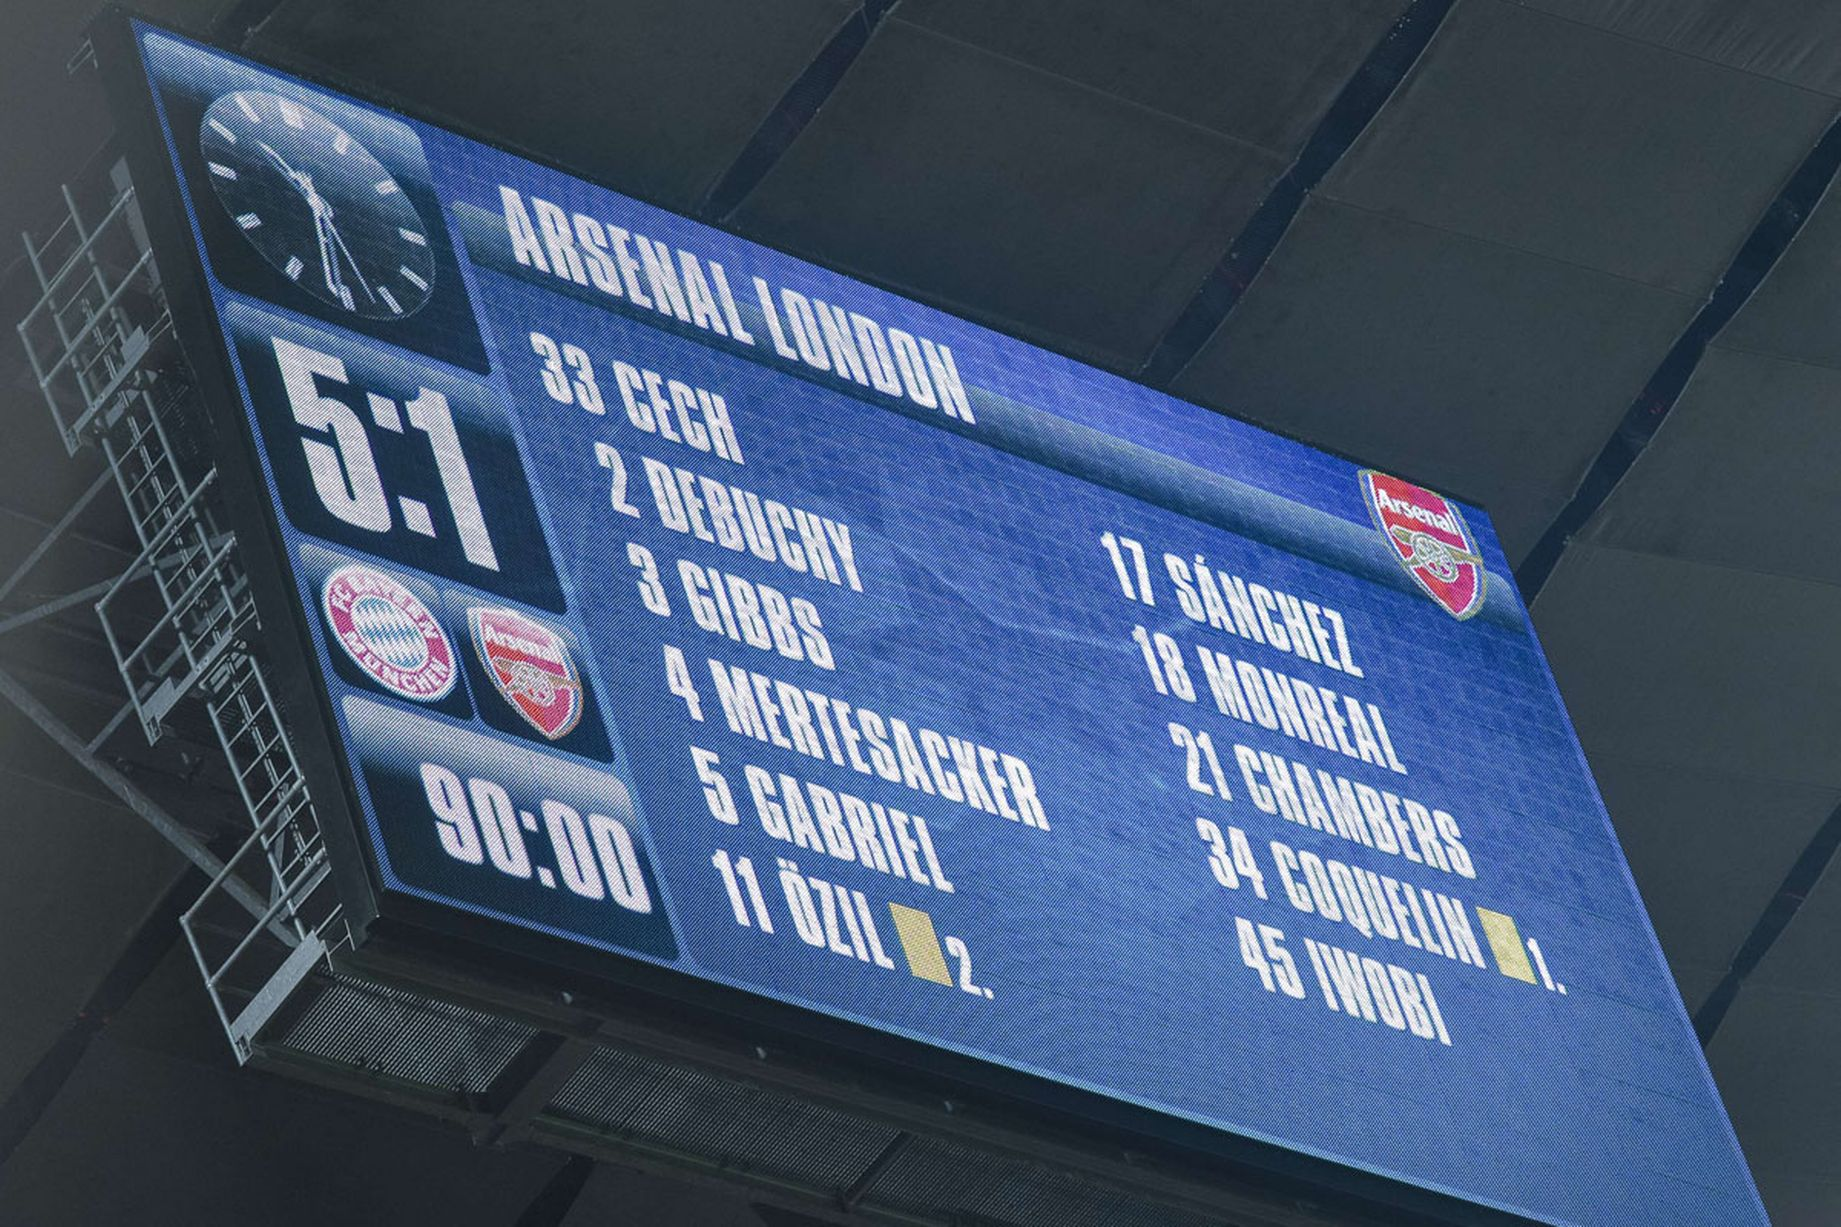 The-final-score-board-reads-5-1-after-the-UEFA-Champions-League-Group-F-second-leg-football-match-between-FC-Bayern